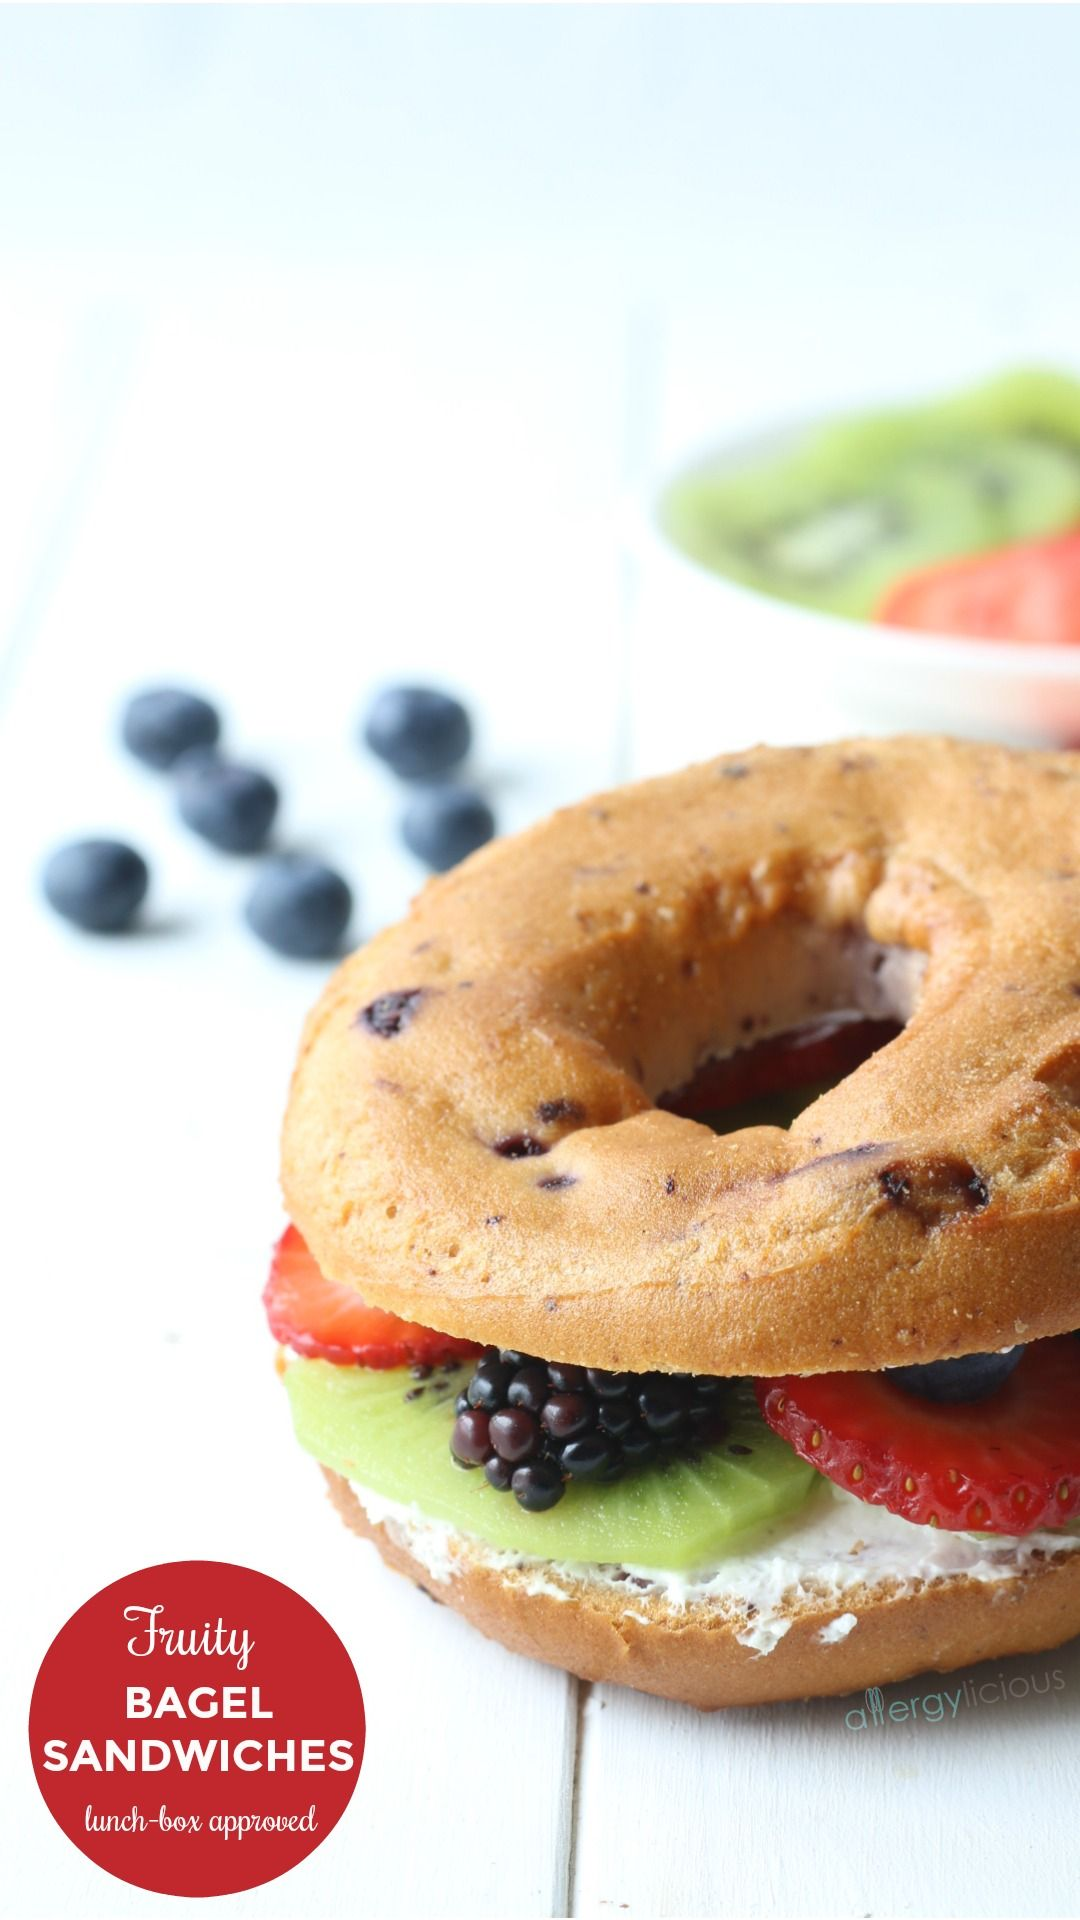 Fruit & fun bagel sandwich ideas